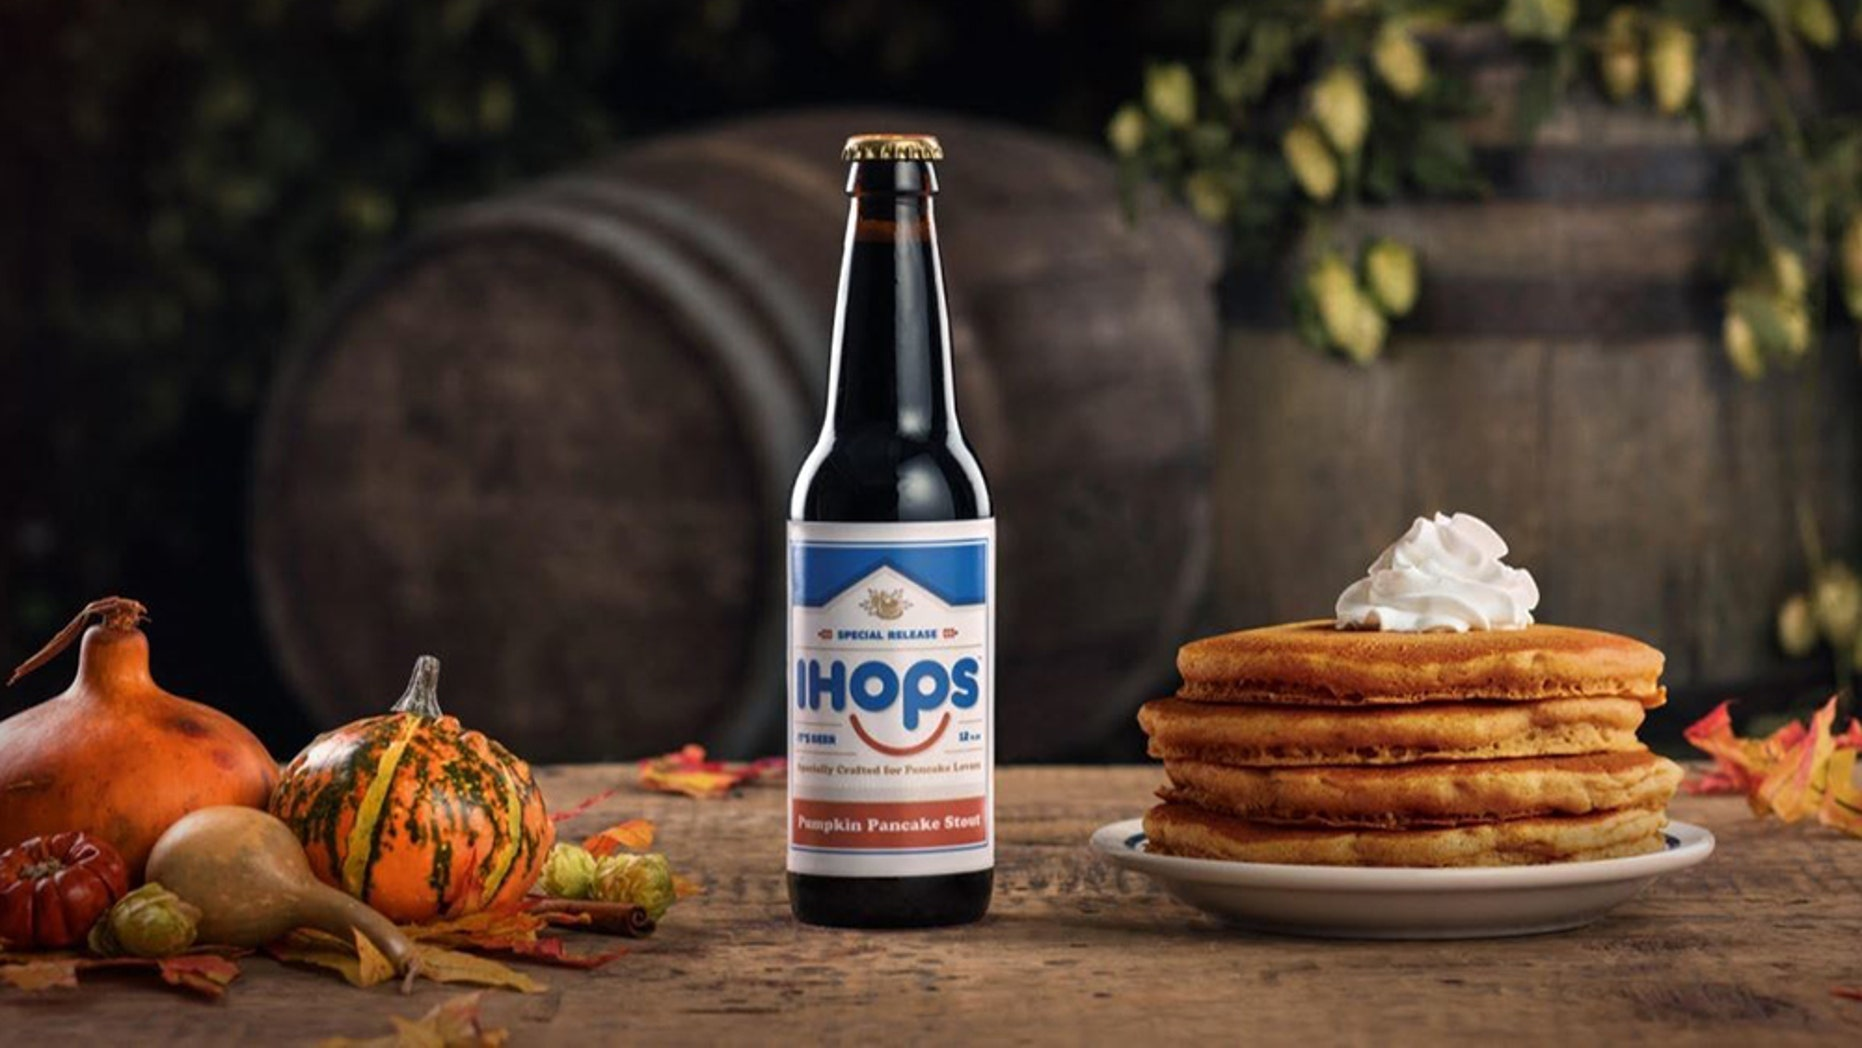 The new brew — IHOPS — won't be available in restaurants, but at select distributors and festivals throughout New York.